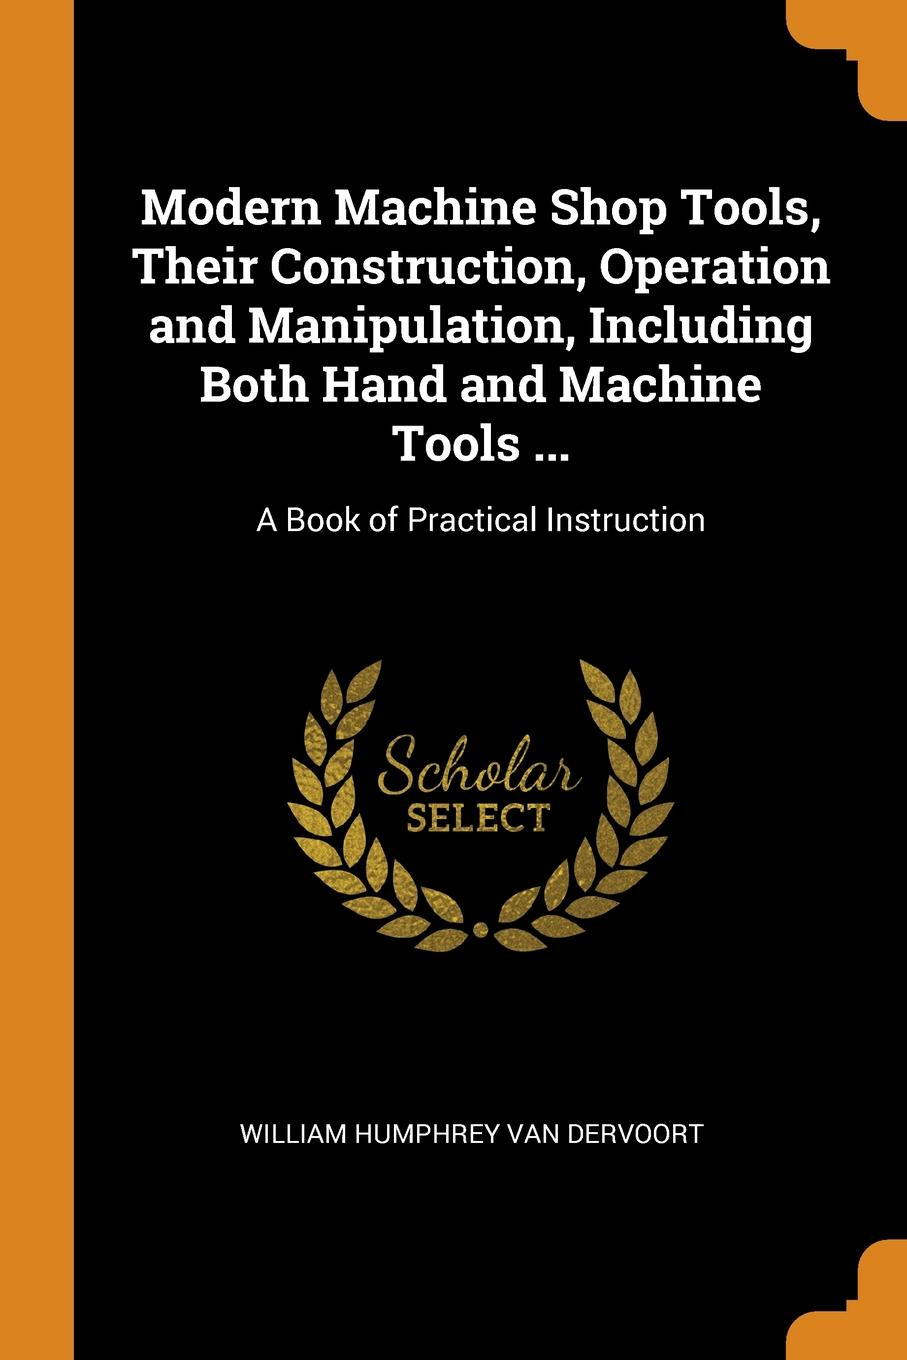 William Humphrey Van Dervoort. Modern Machine Shop Tools, Their Construction, Operation and Manipulation, Including Both Hand and Machine Tools ... A Book of Practical Instruction